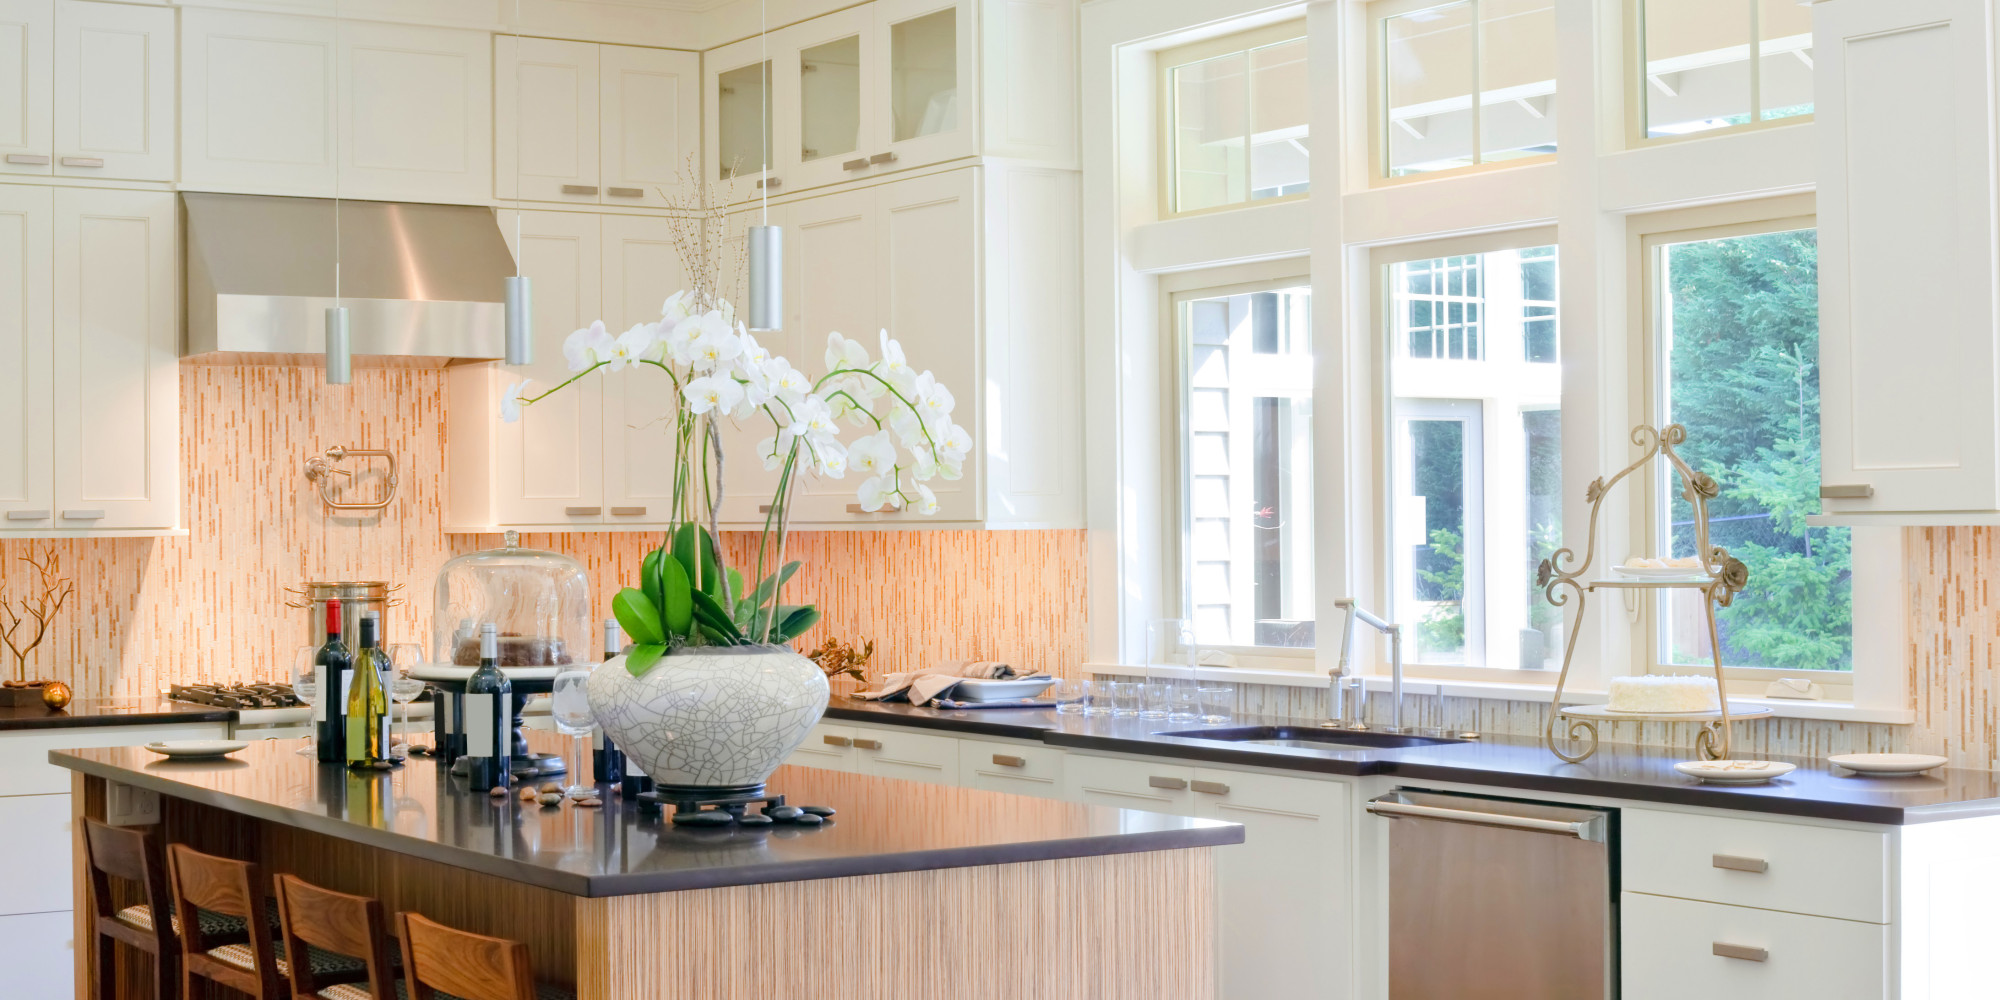 The 11 Best Life Hacks For Keeping Your Kitchen Fabulous (PHOTOS ...